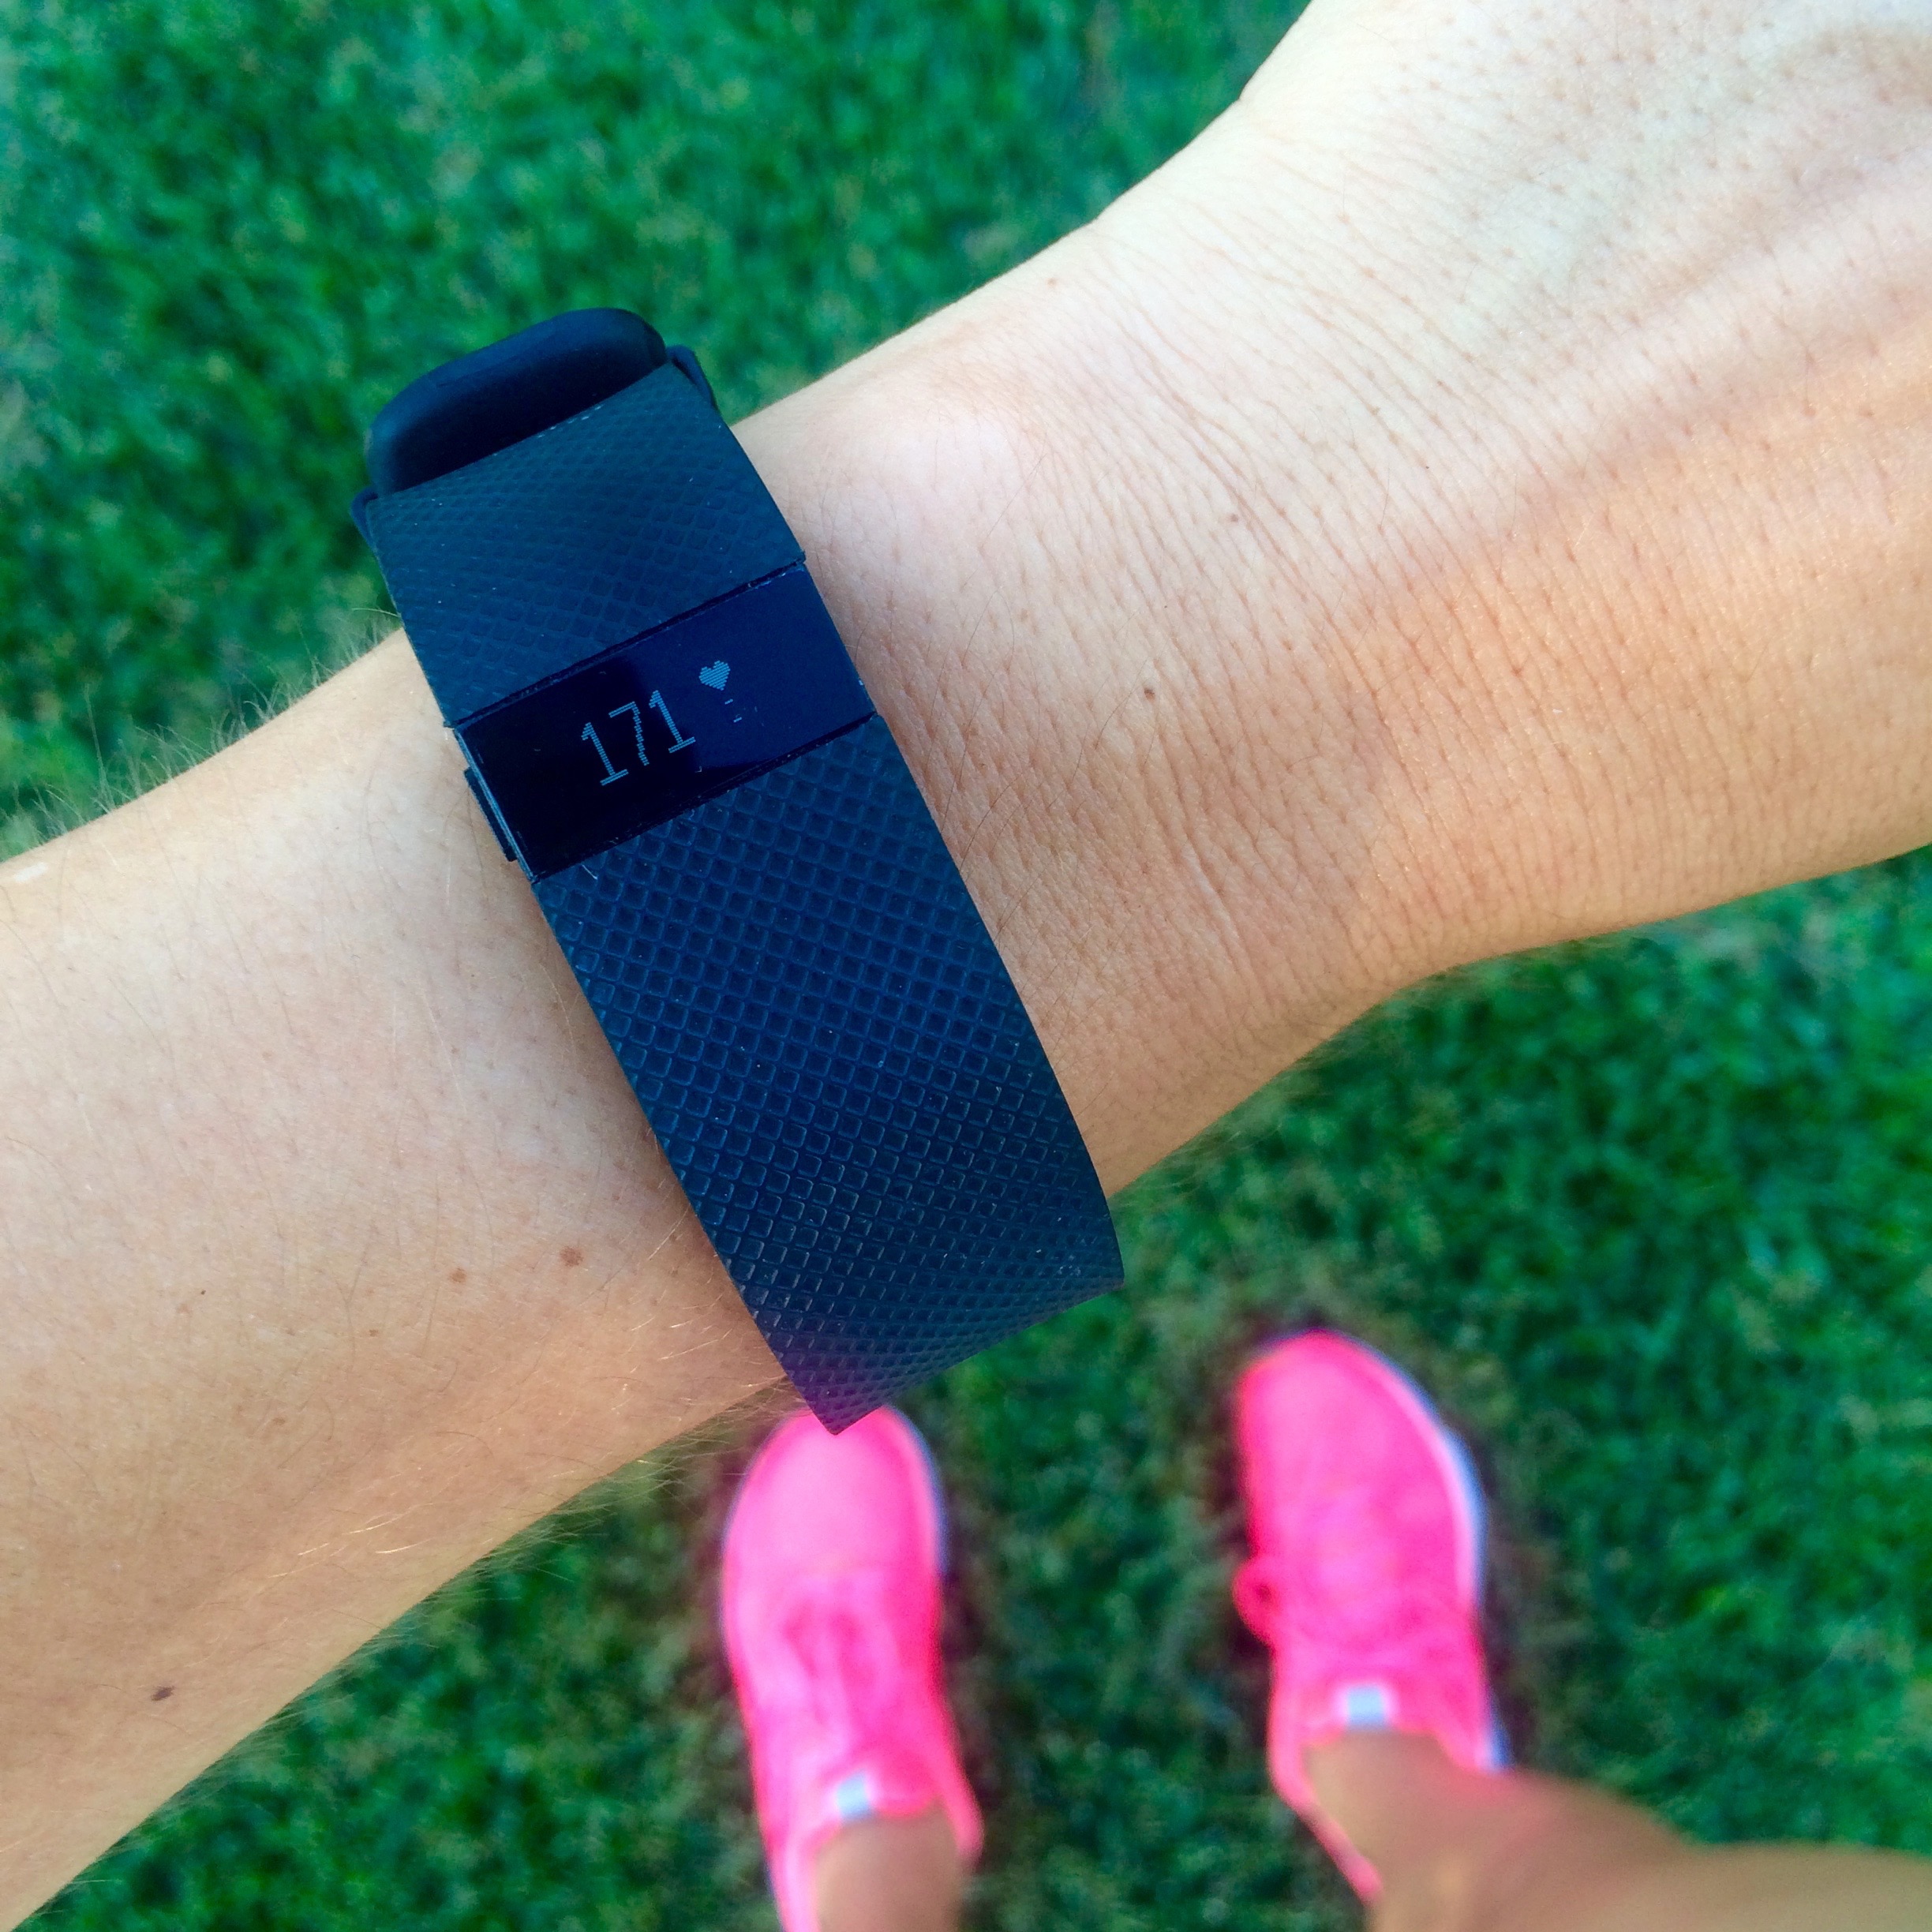 How To Determine Your Obla Level Heartratenotesforbasiccircuittrainingjpg And Heart Rate